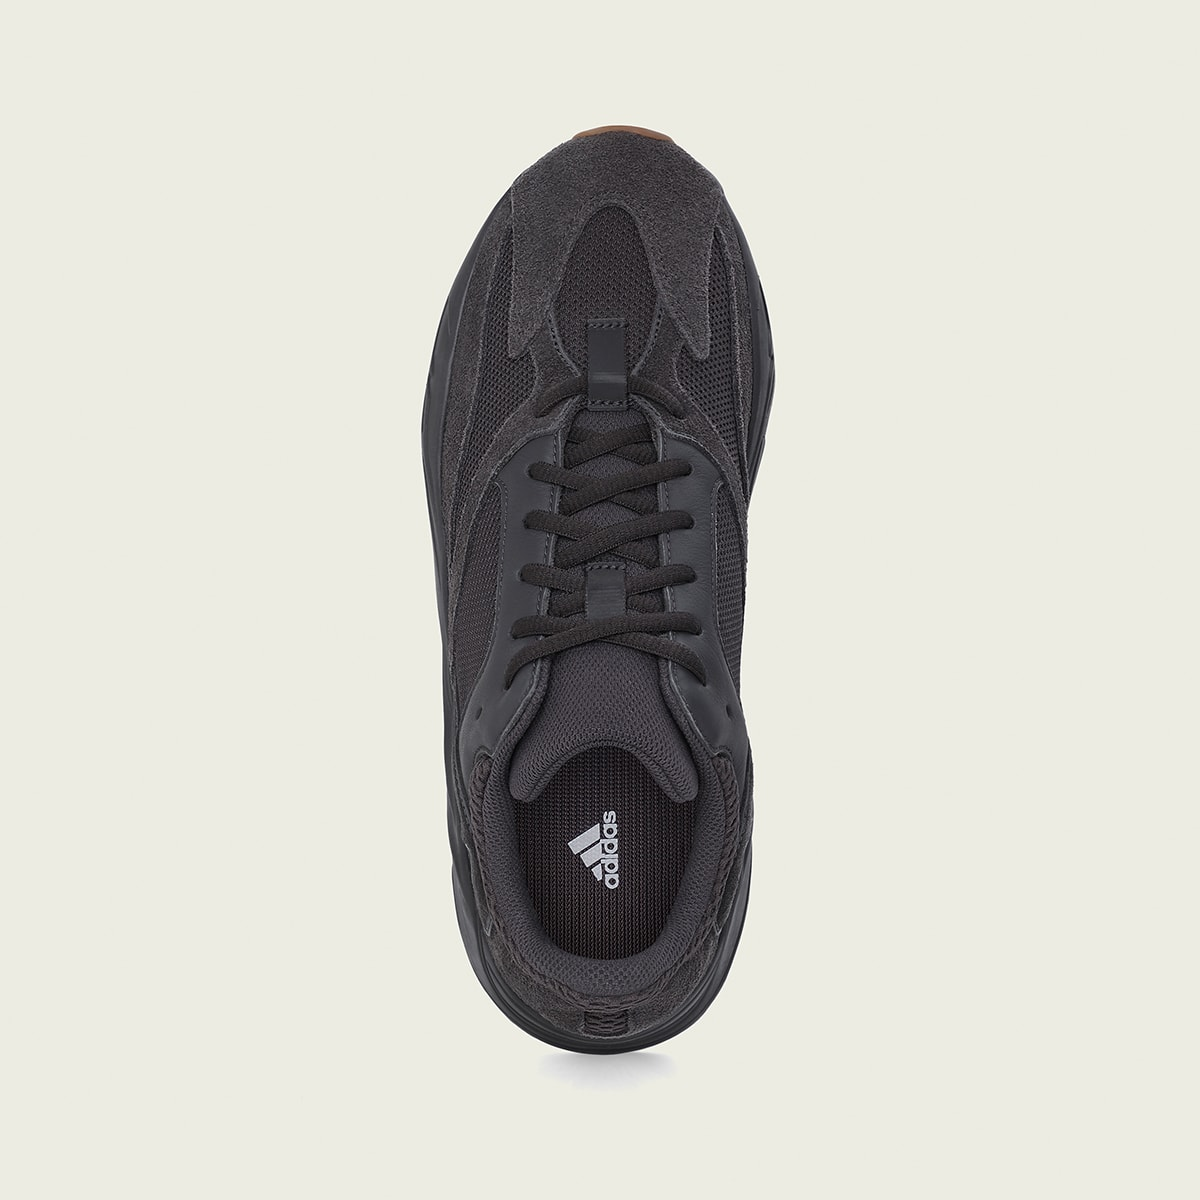 timeless design 64636 d5ddb Yeezy Boost 700 (Utility Black)